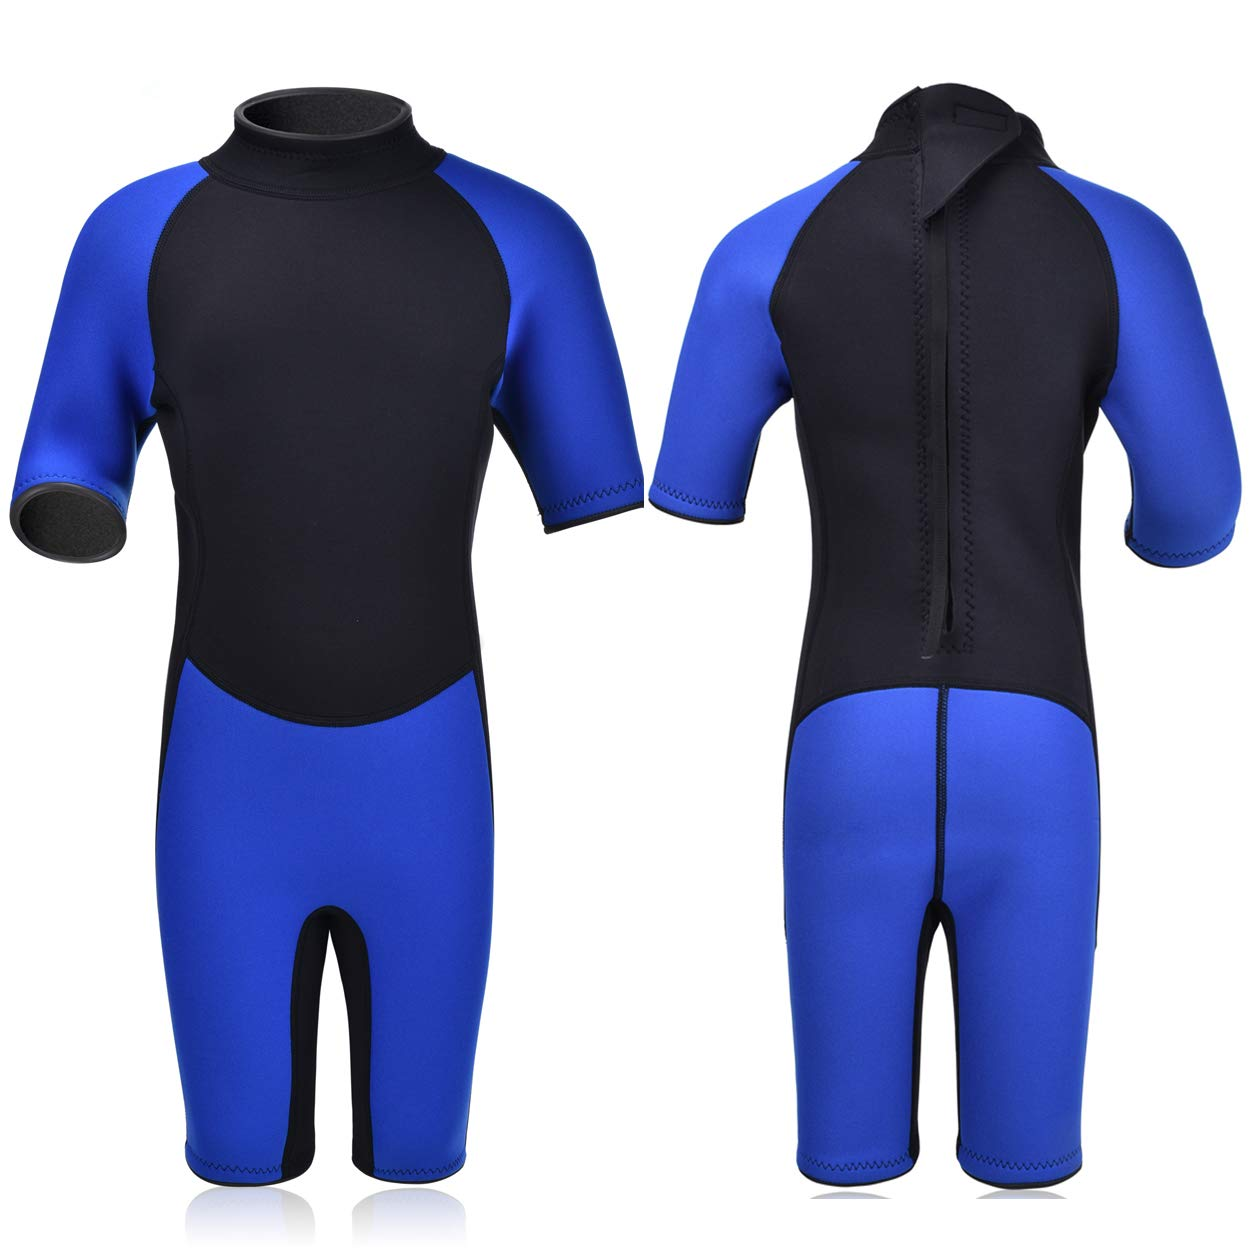 Realon Kids Wetsuit Shorty Boys Girls 3mm Neoprene One Piece Thermal Swimsuit 2mm Warm Full Long Sleeve Wet Suits Cover Infant Toddler Baby Child Junior Youth Swim Surf Snorkel Dive Snorkel Back Zip by Realon